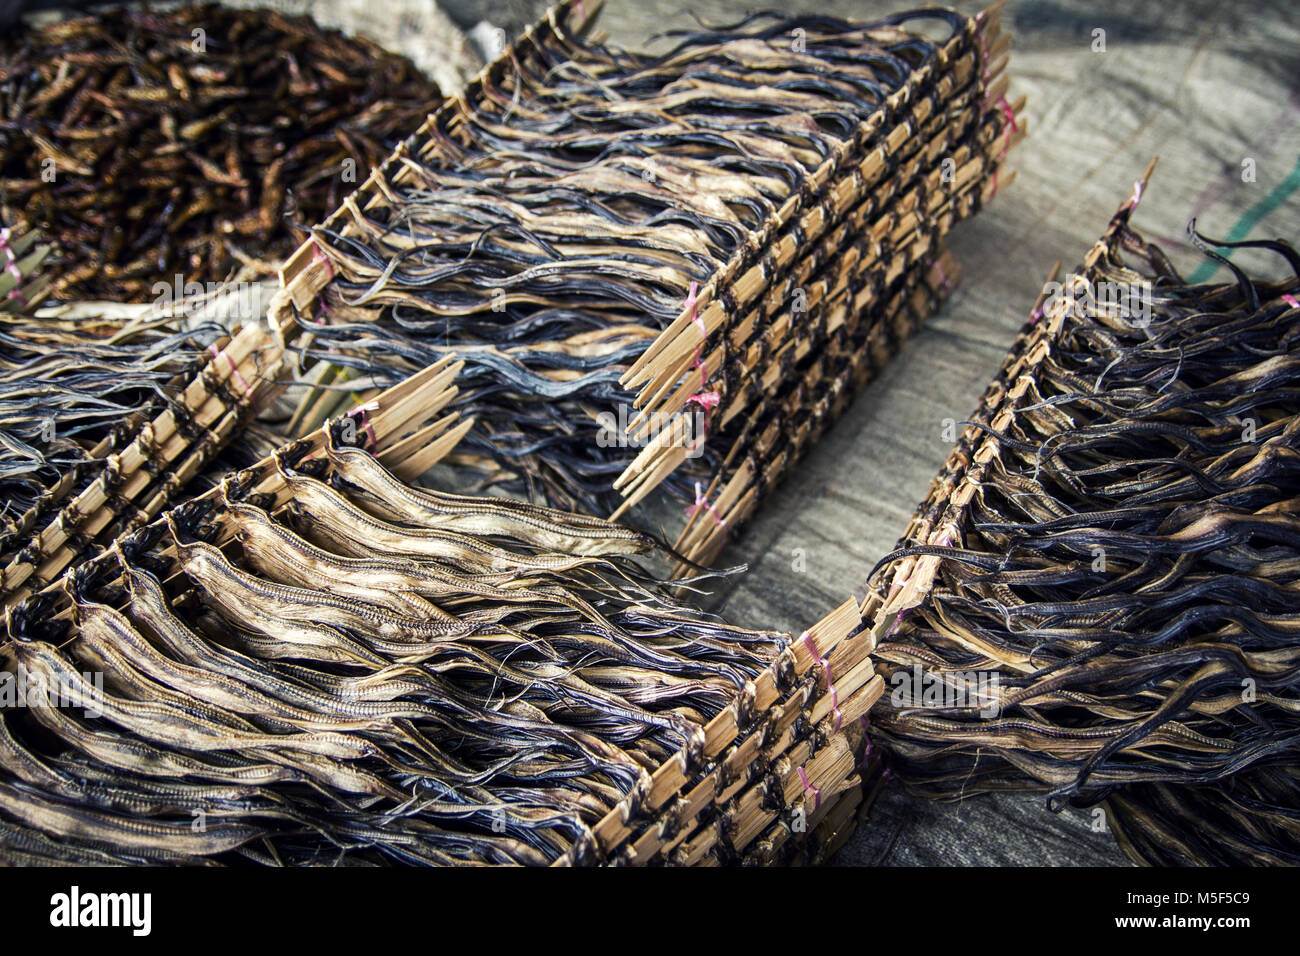 Dried Anchovies for sale on market stall in Indonesia. Dried Anchovies have been tied between two slender sticks - Stock Image